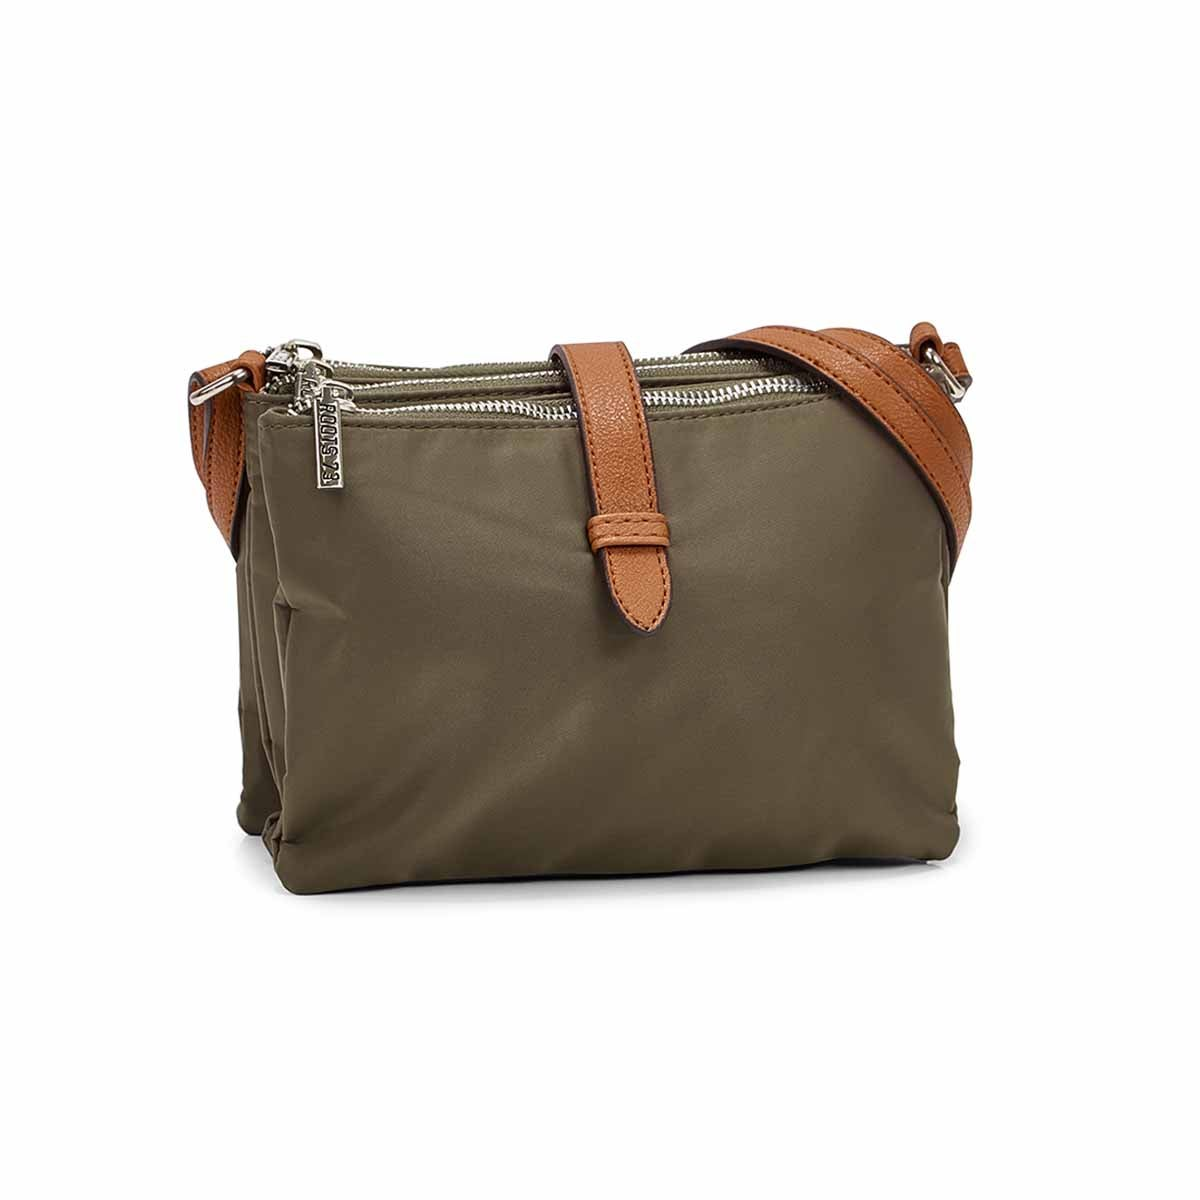 Lds khaki 3 top zip crossbody bag